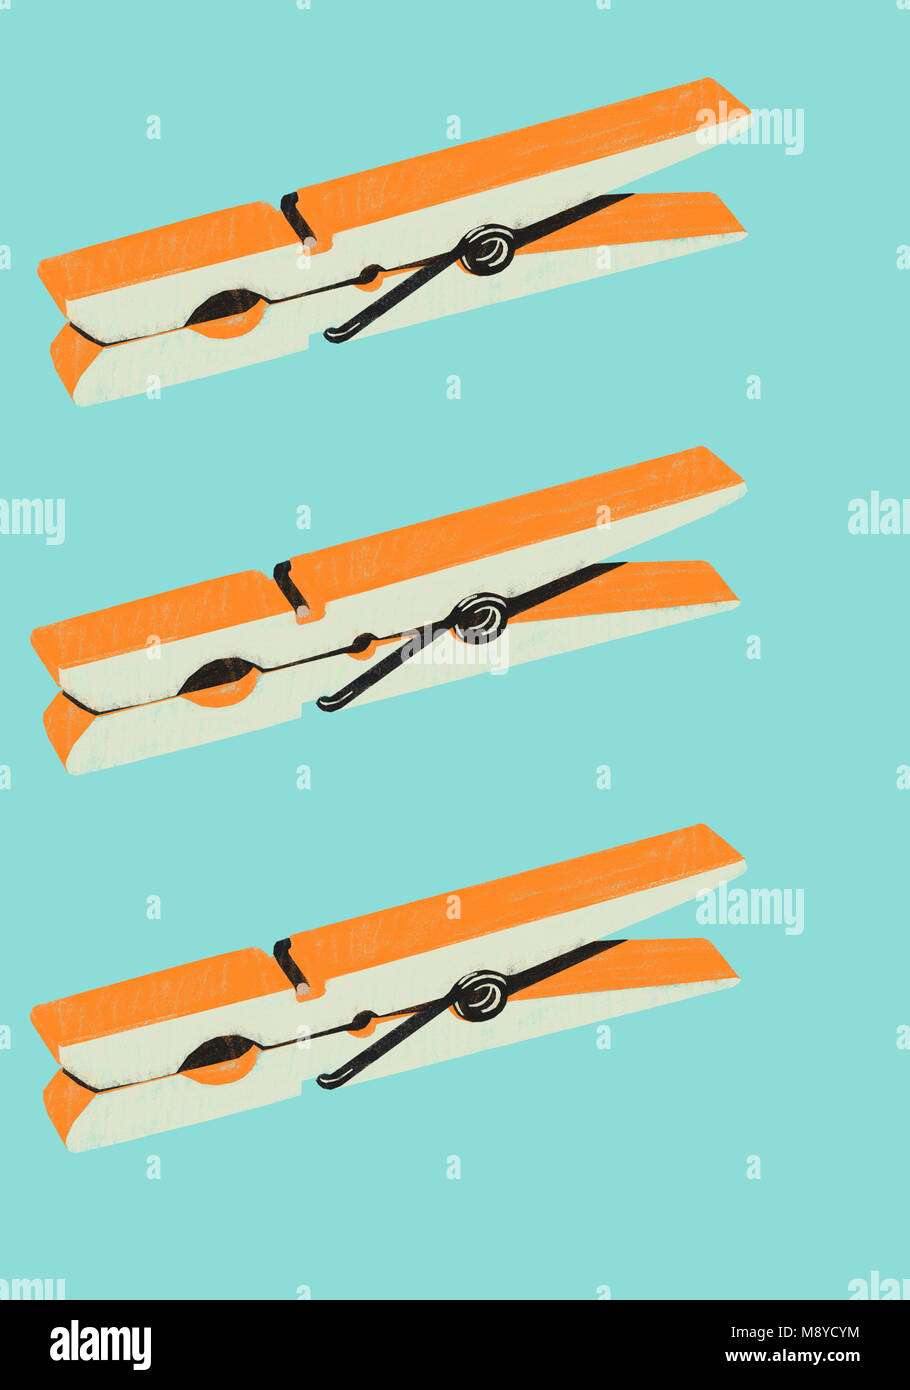 Graphic resource shows orange daily object , clothespin, on blue background. Minimalist illustration - Stock Image